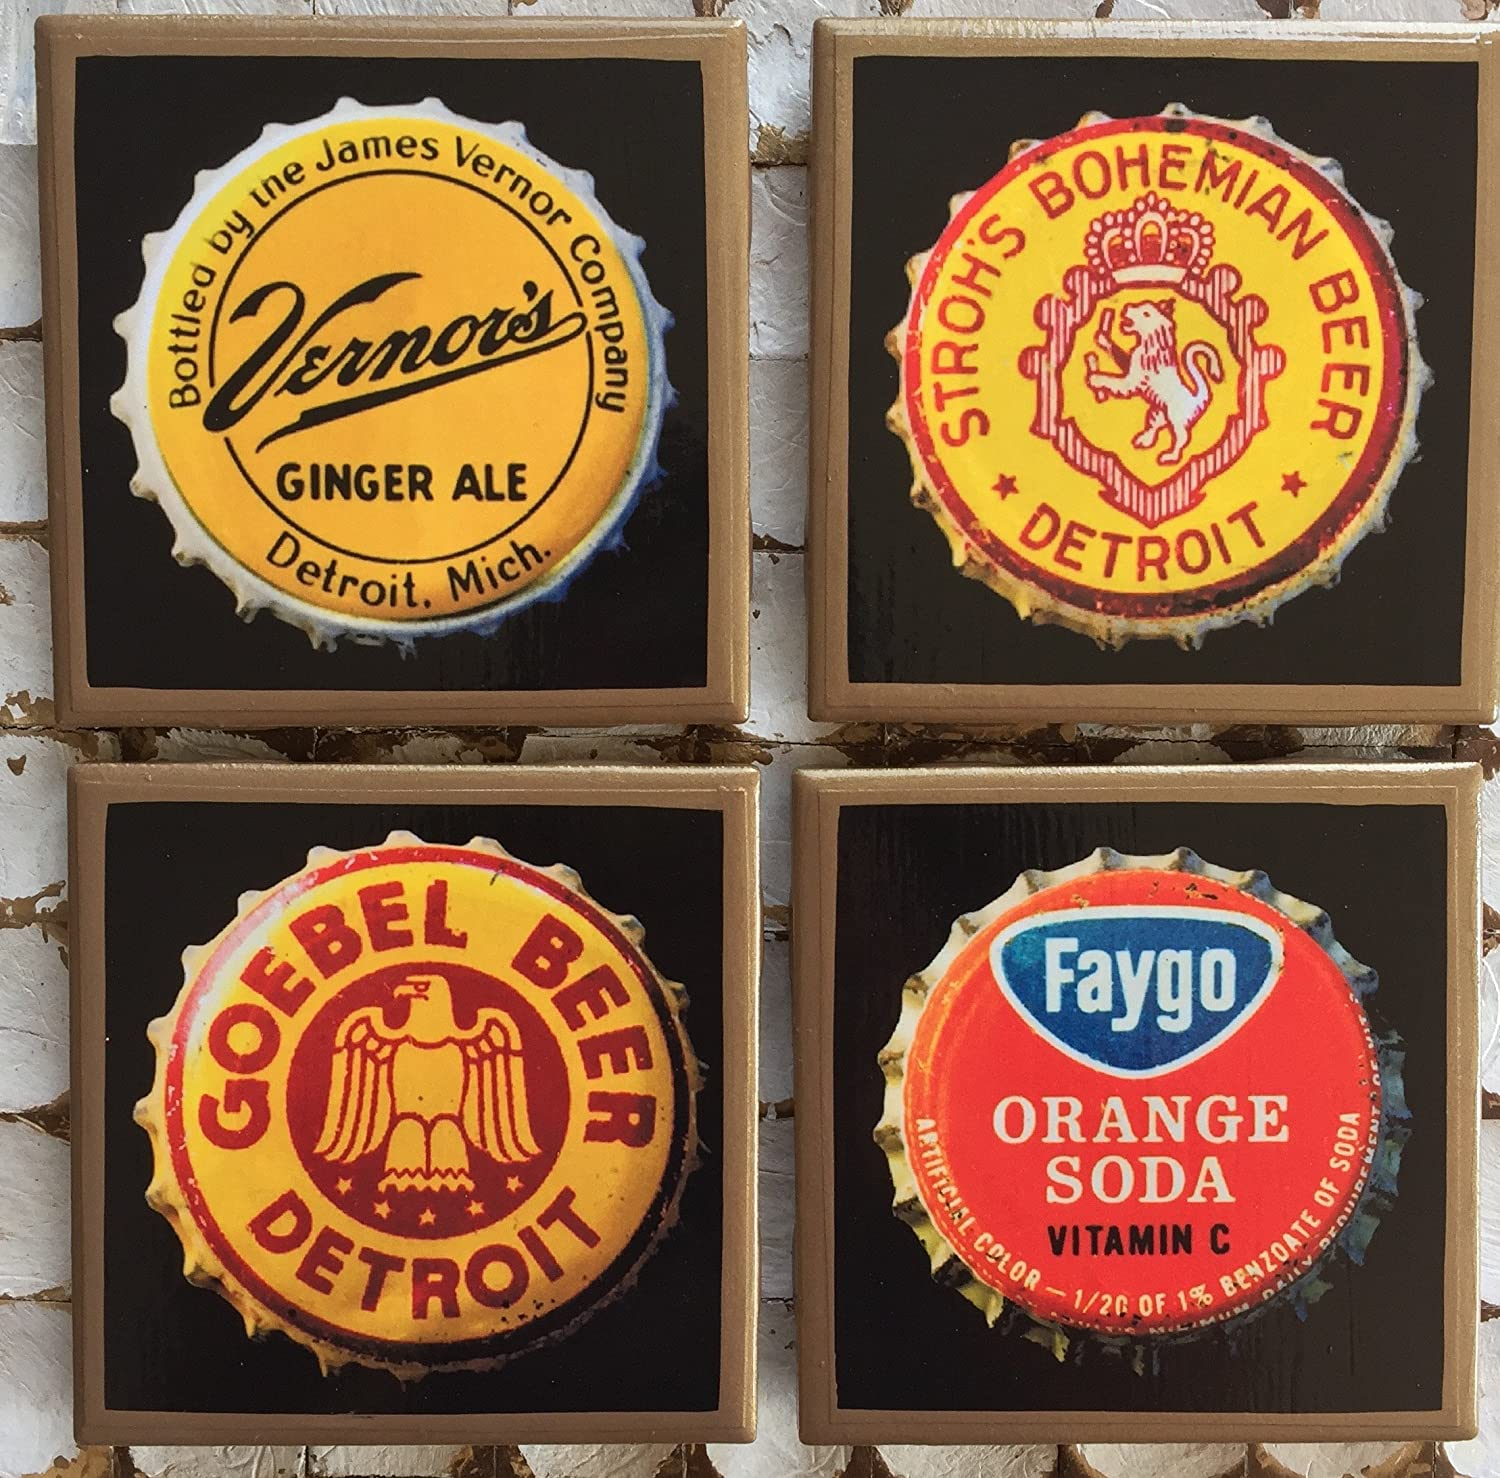 Detroit Our shop OFFers the best service bottle cap brands set of gold with Vernor coasters trim. Over item handling ☆